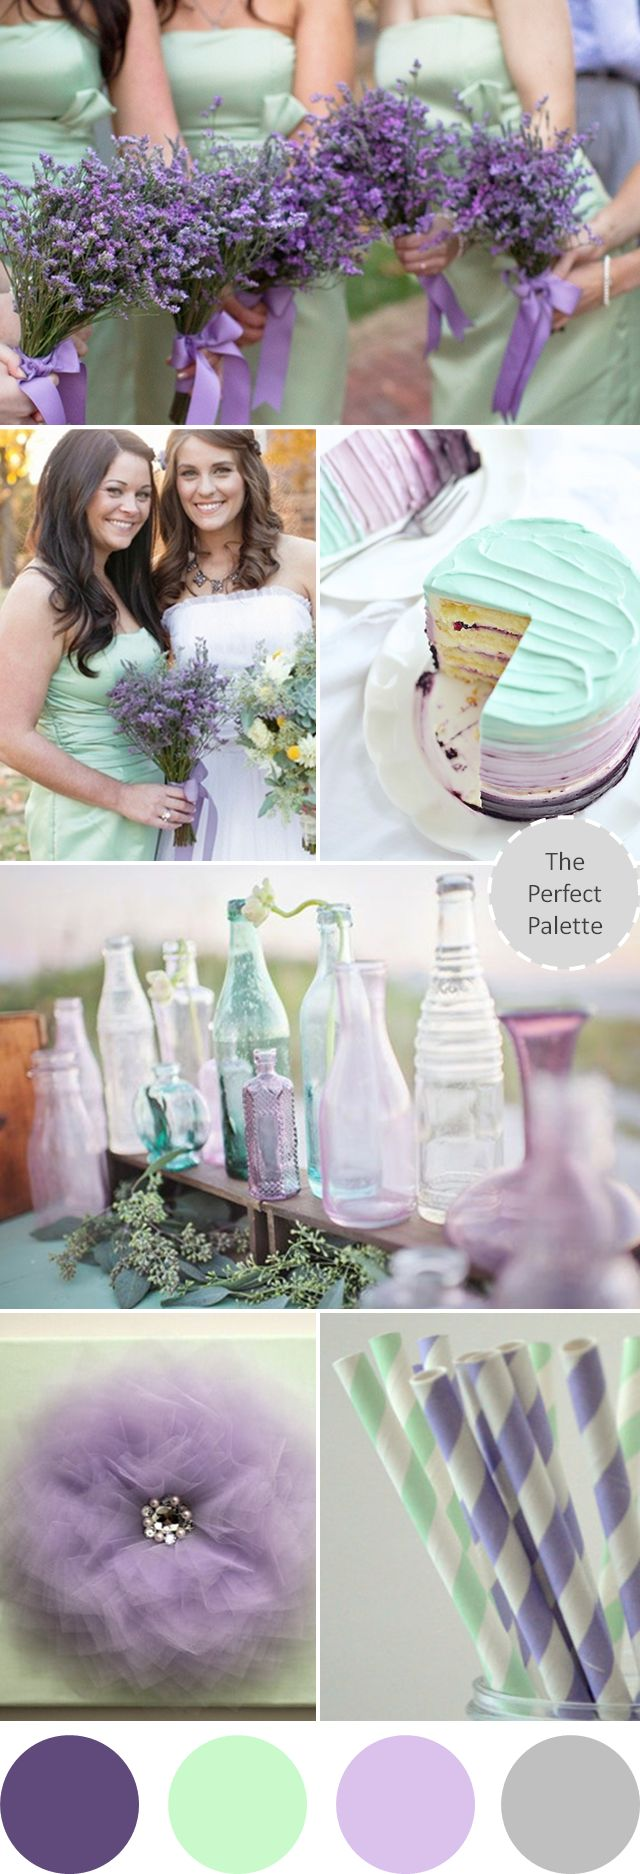 886 best Dream Wedding images on Pinterest | Cake wedding, Mariage ...